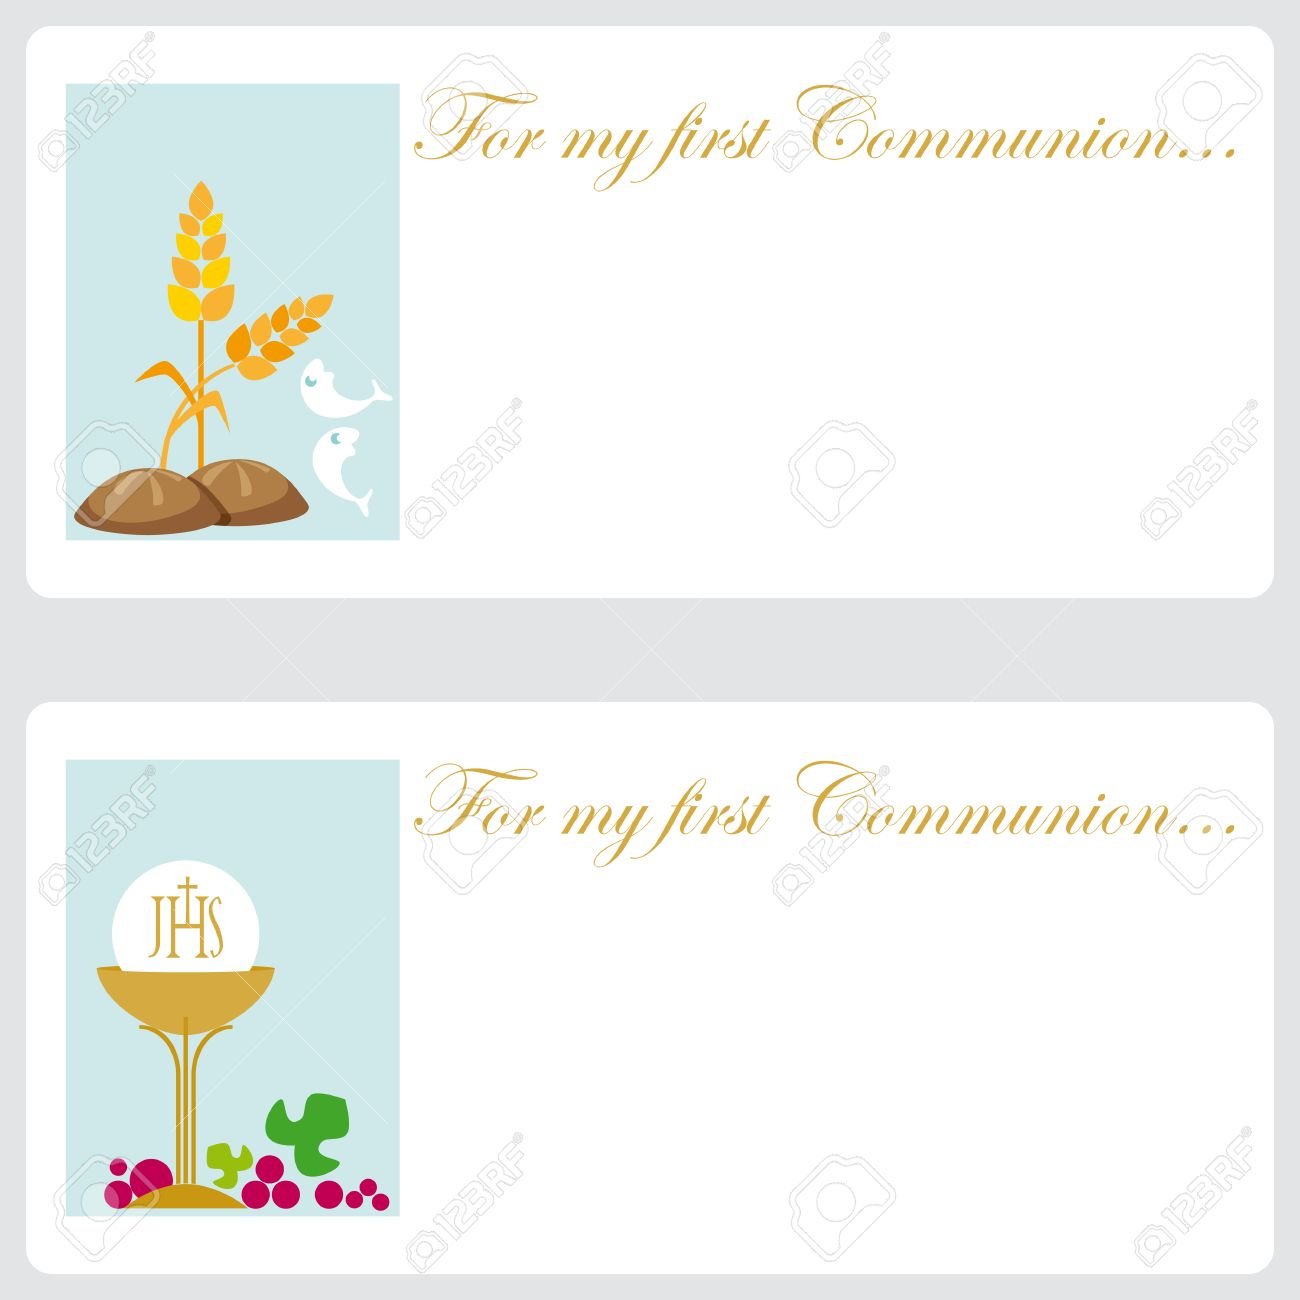 Invitation cards for religious event royalty free cliparts vectors invitation cards for religious event stock vector 29538329 stopboris Image collections